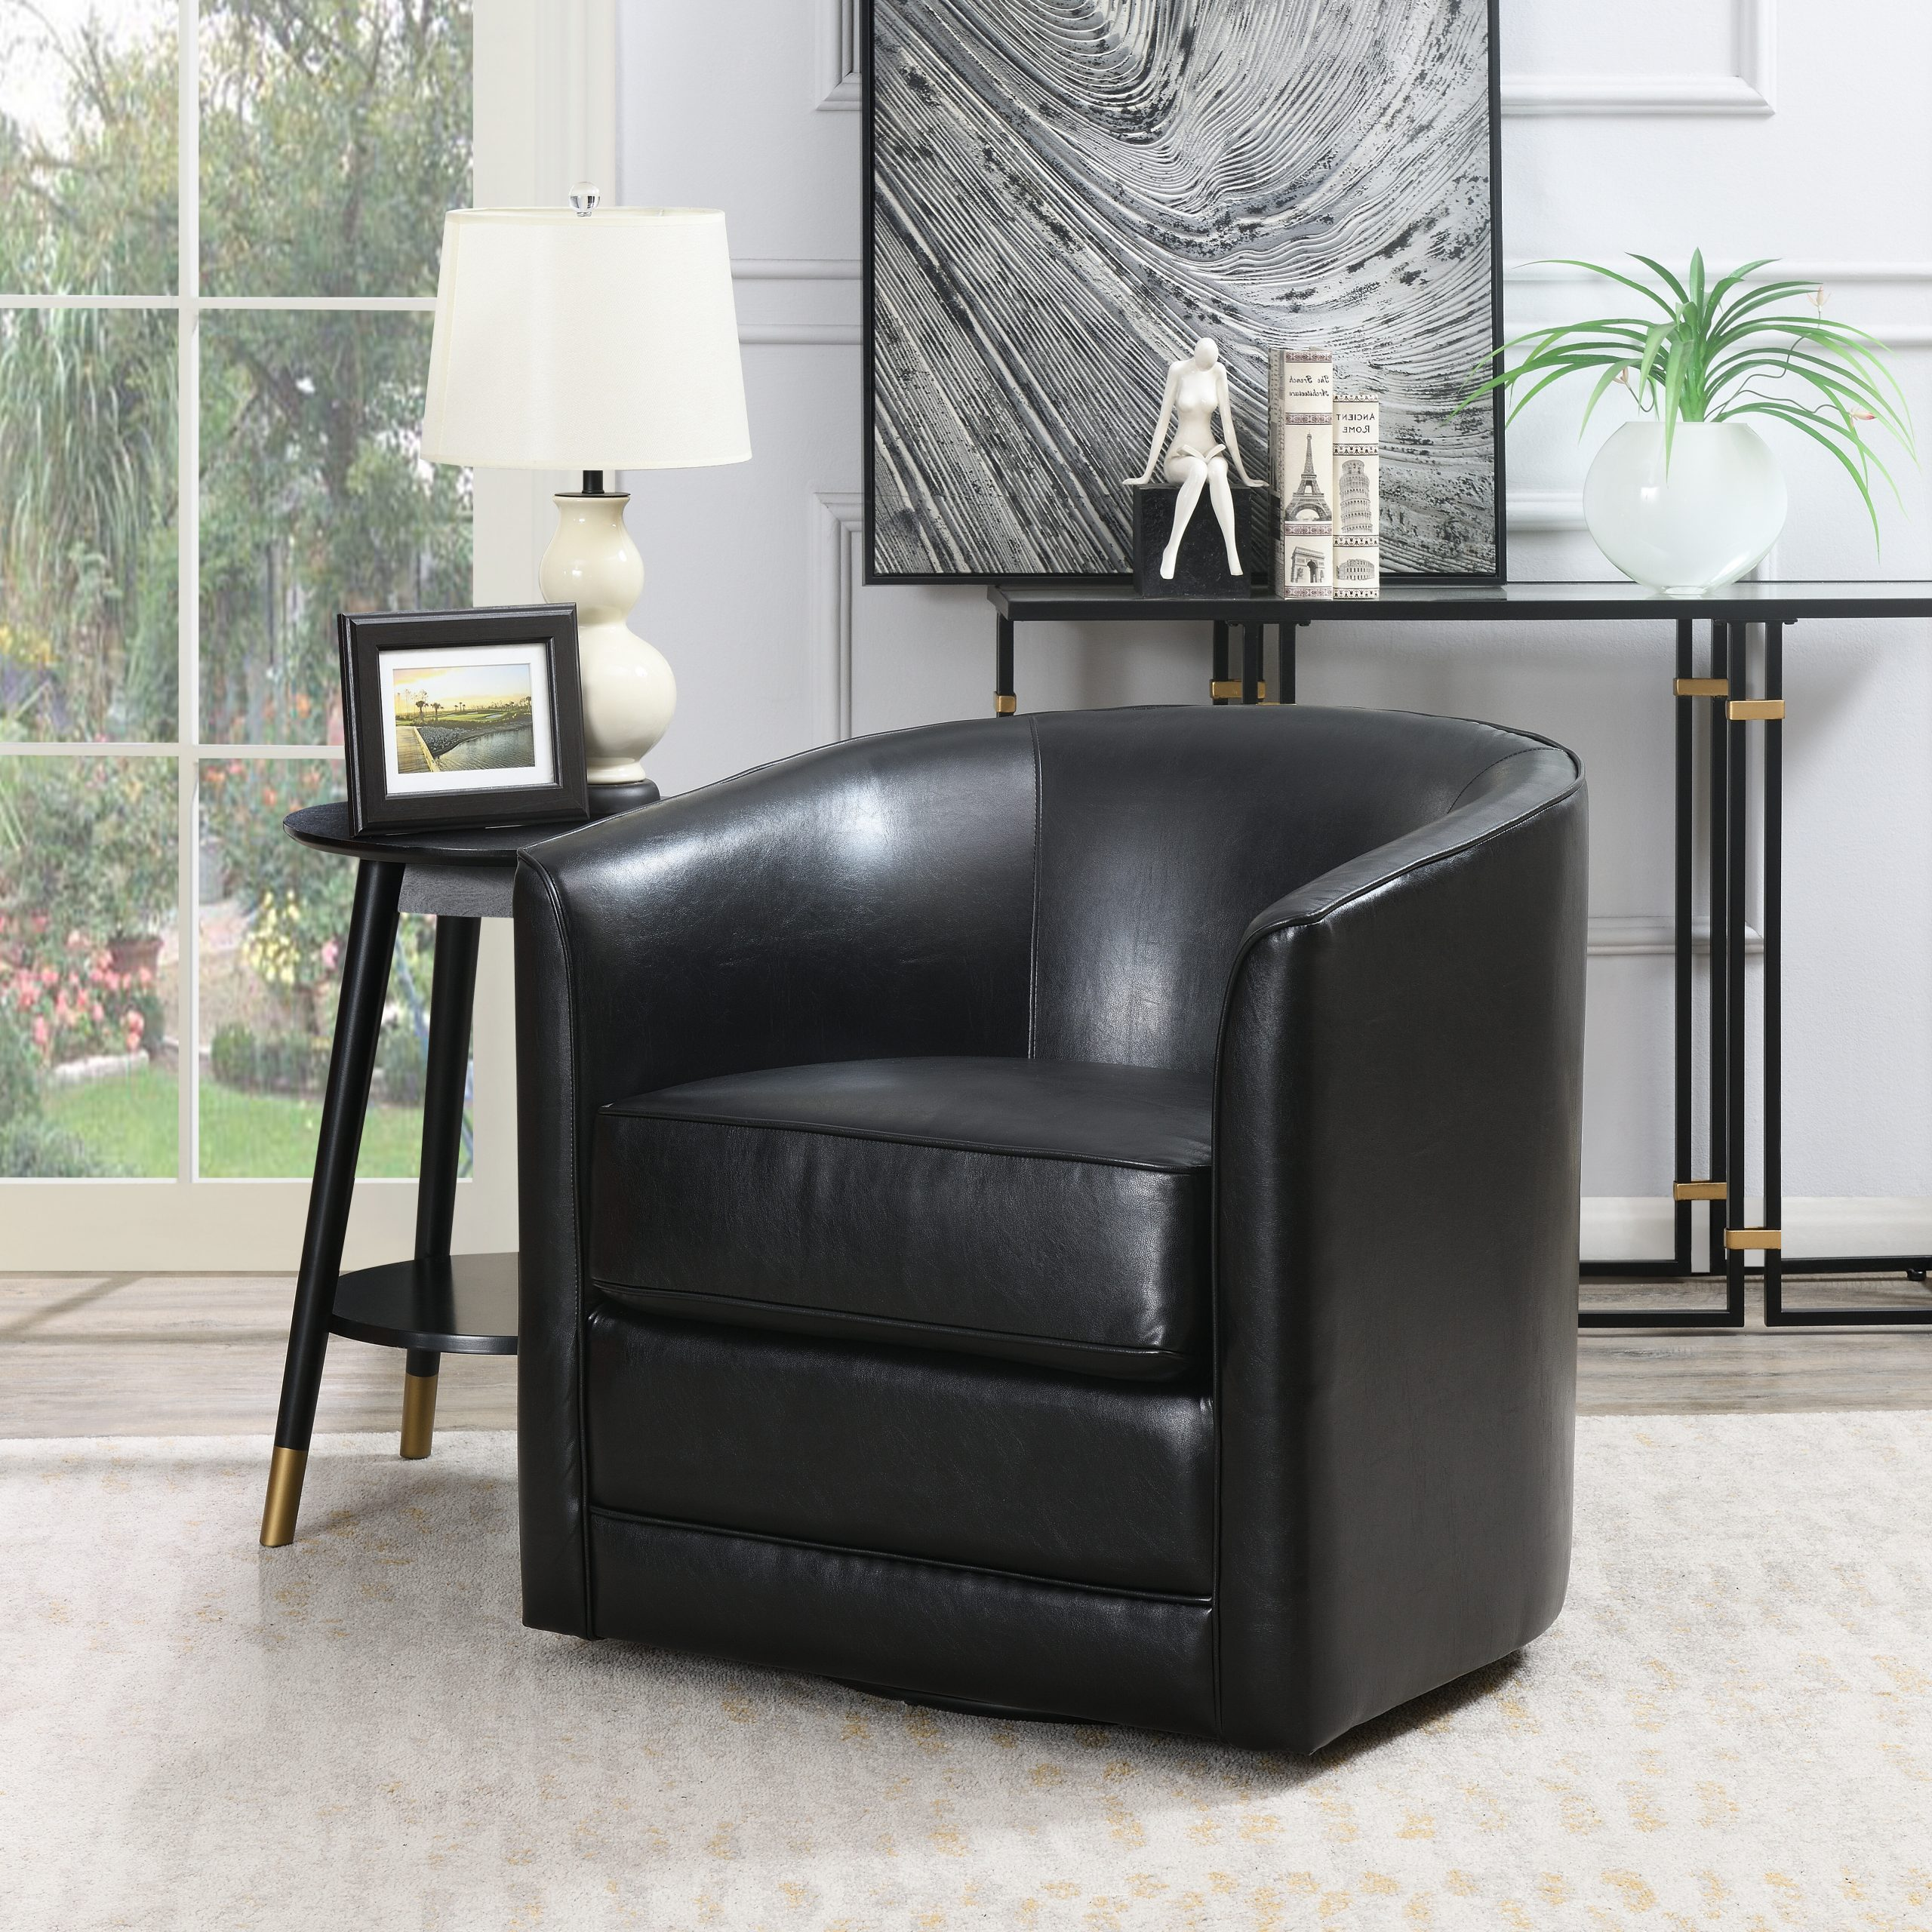 2020 Barrel Black Accent Chairs You'll Love In  (View 16 of 20)